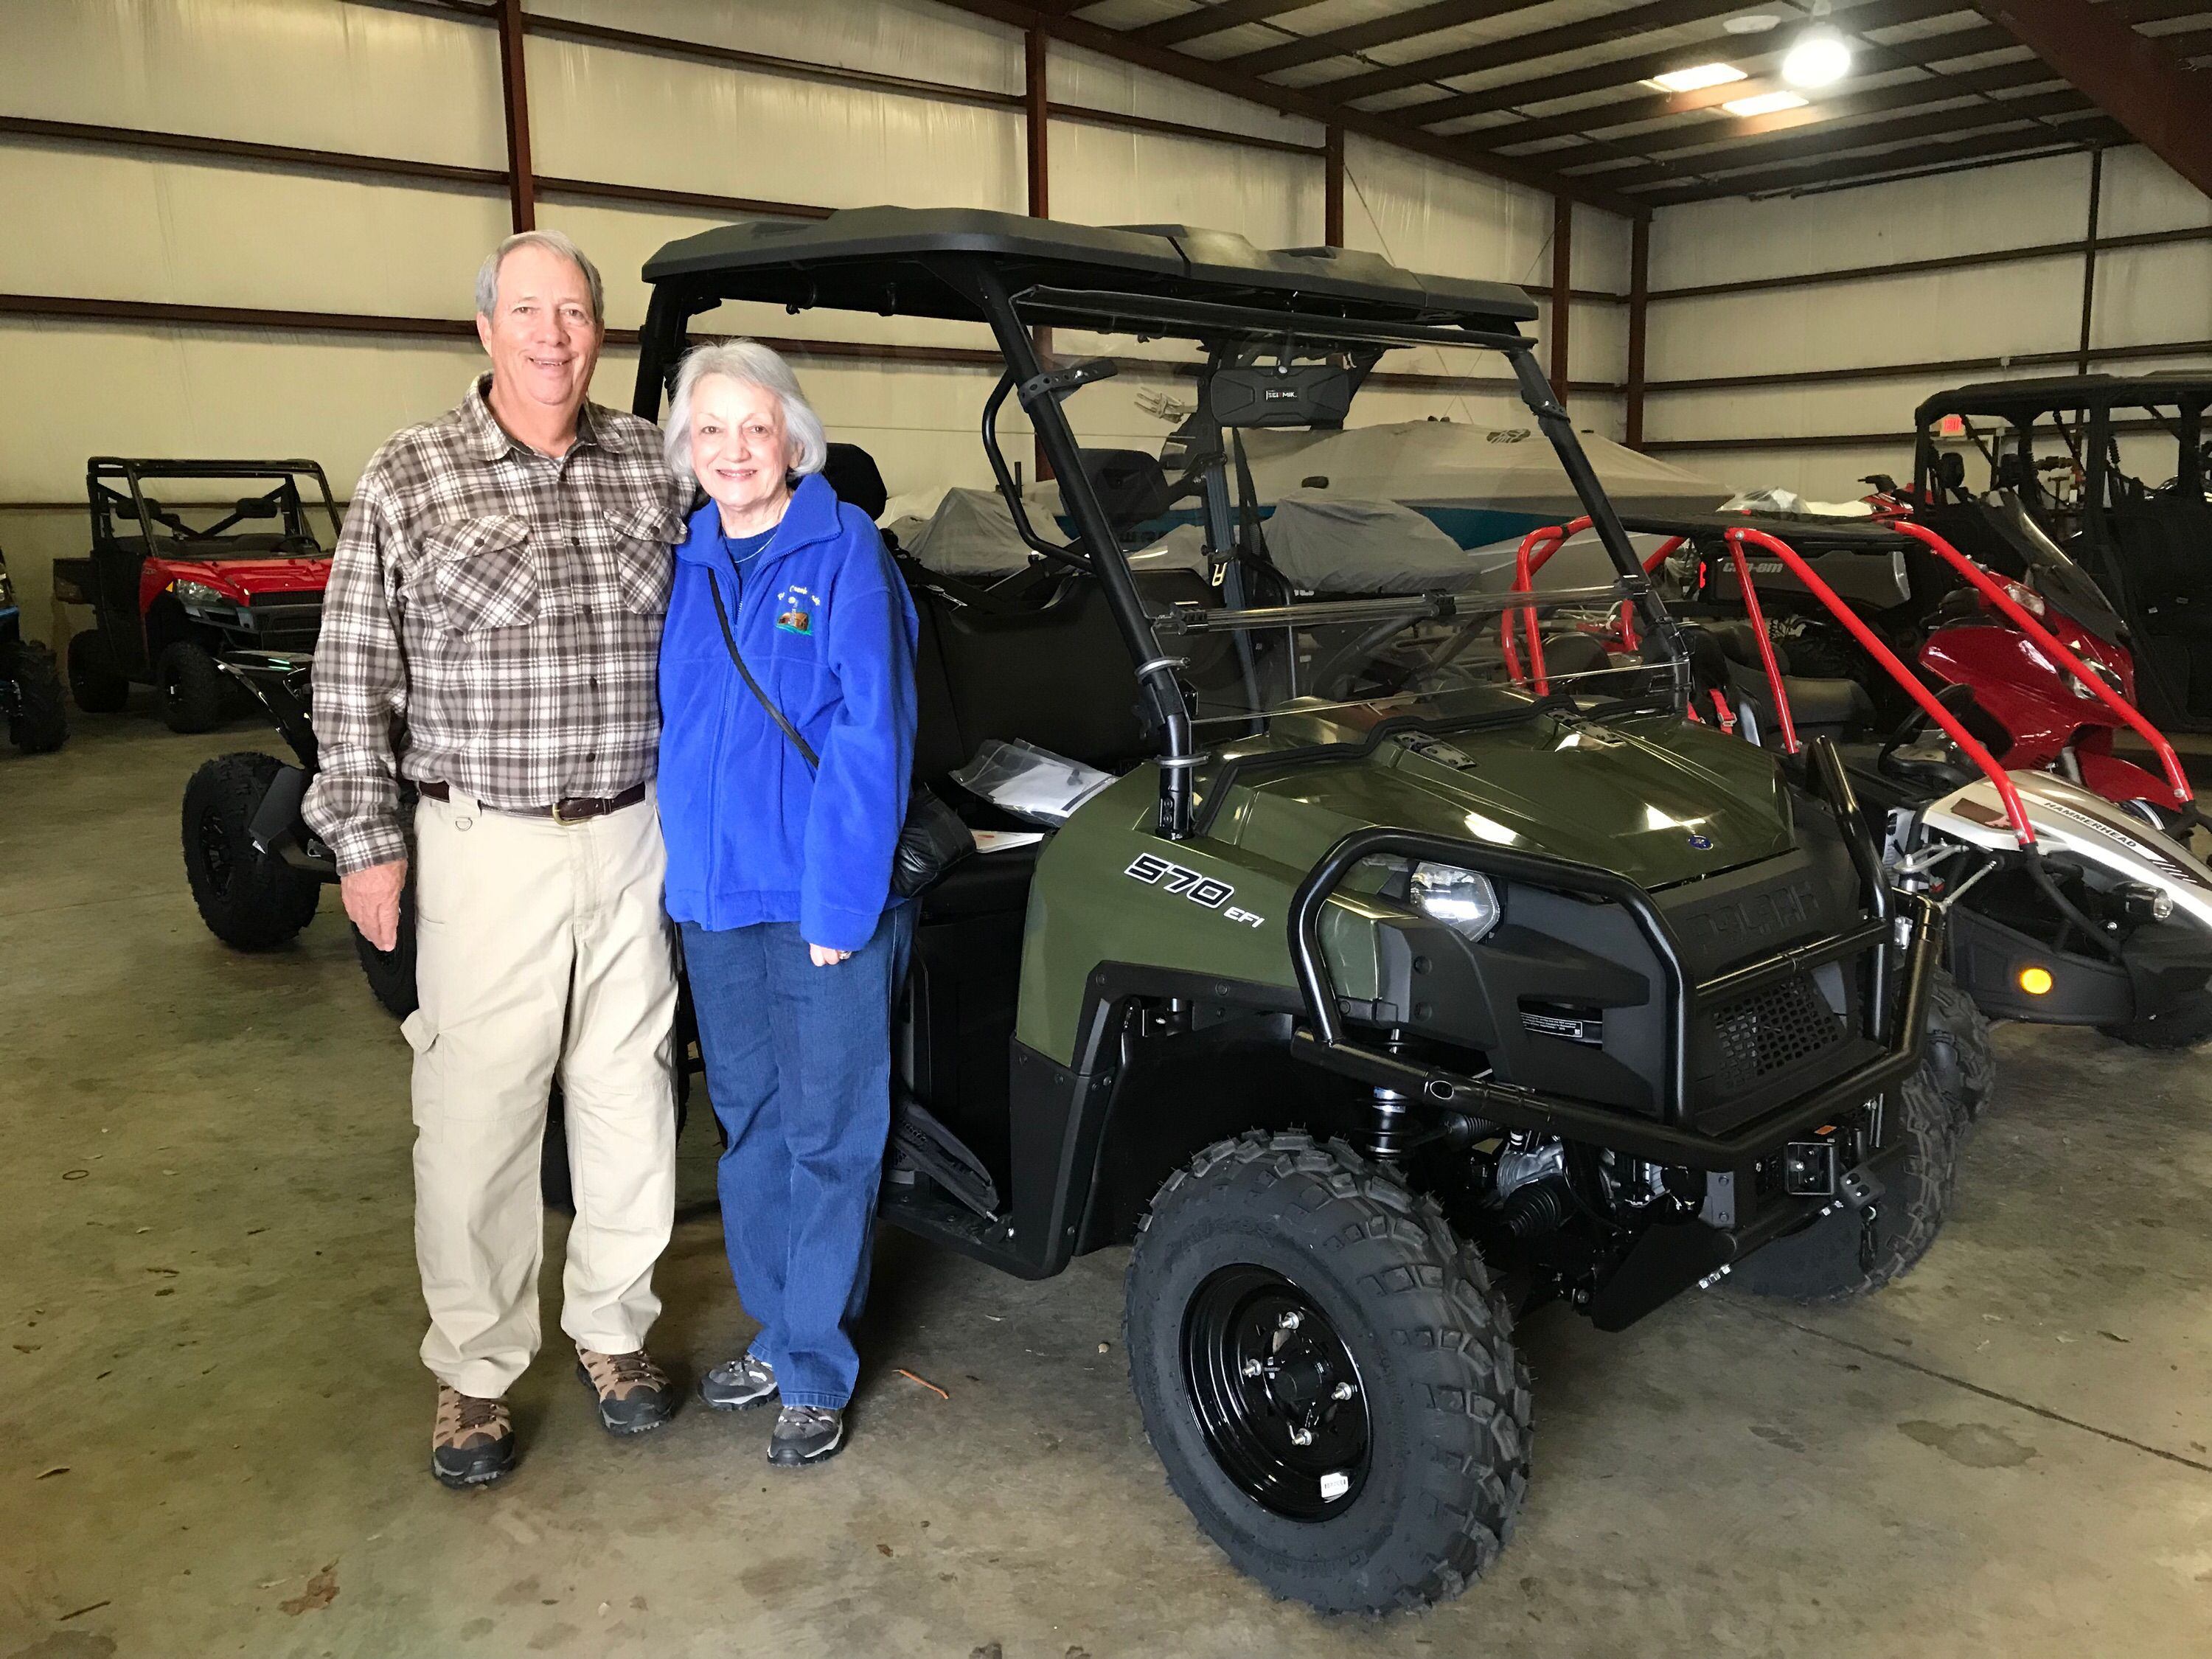 Congratulations to Pat and Joy Conerly from Sumrall, MS for purchasing a 2018 Polaris Ranger 570 at Hattiesburg Cycles. #polaris